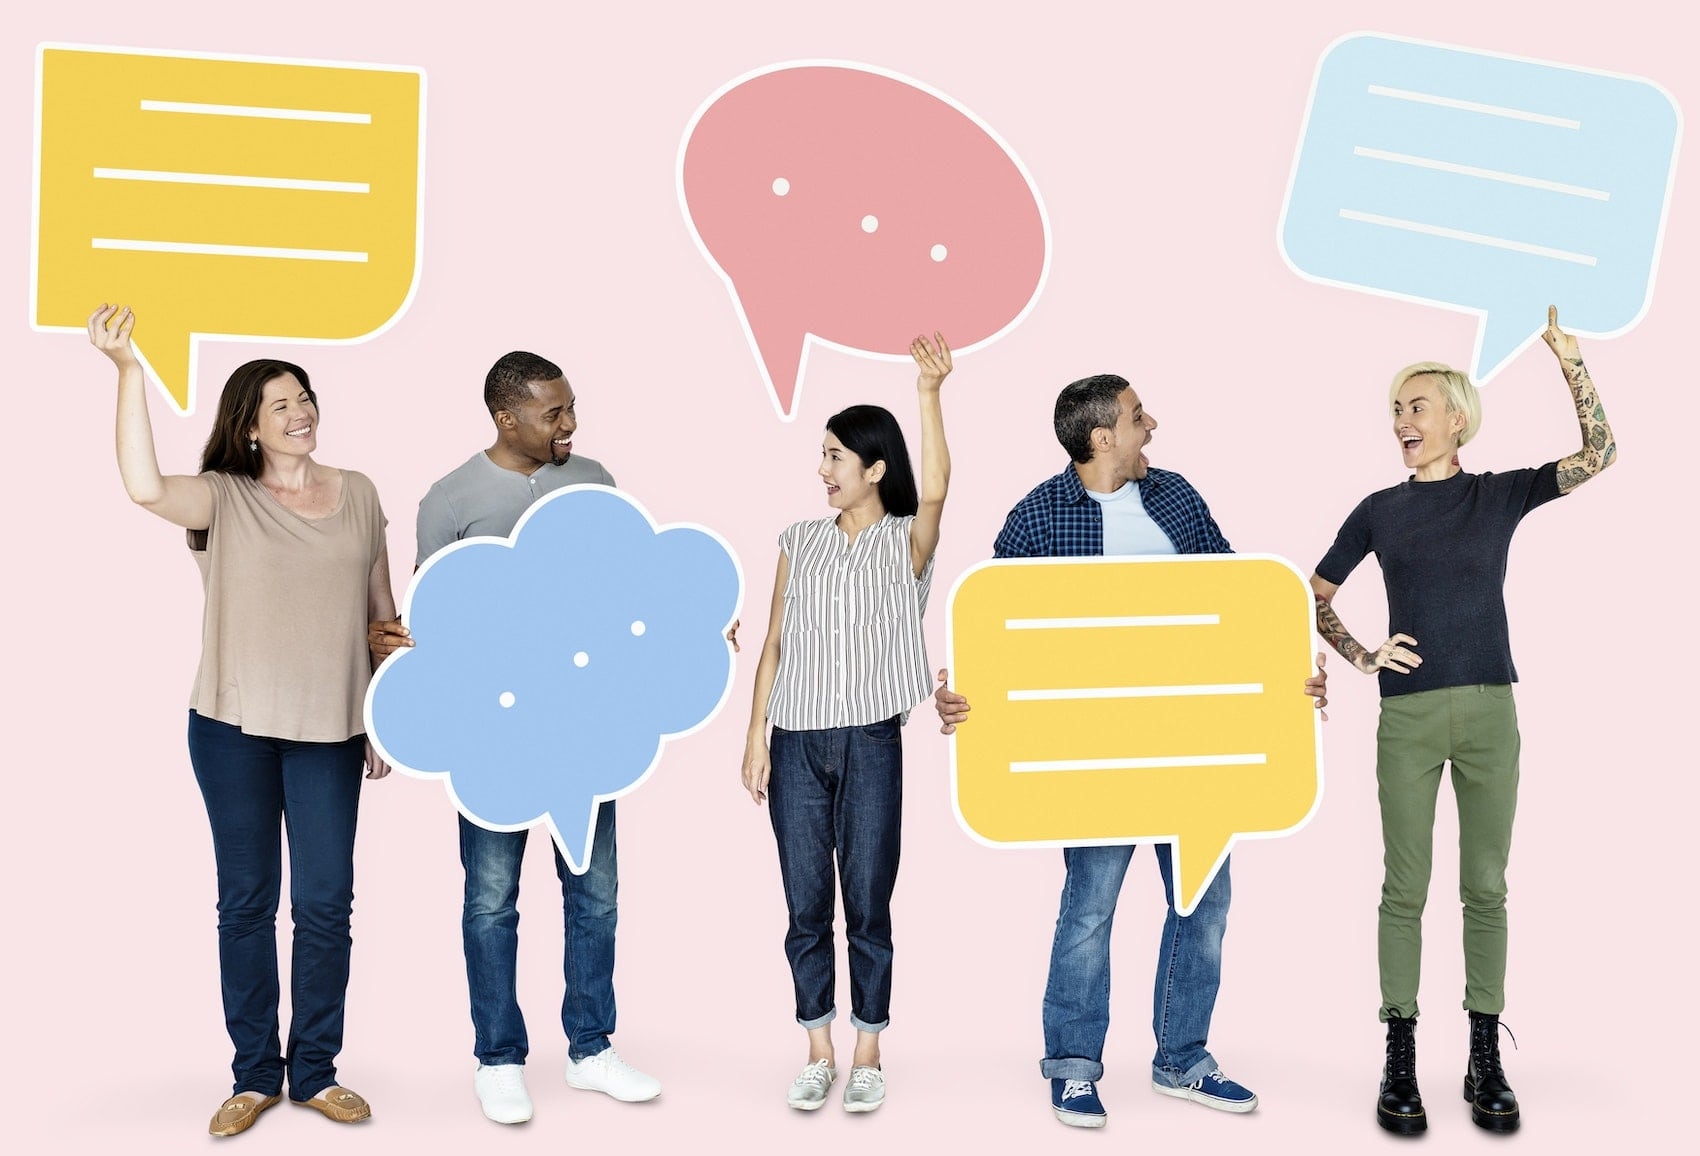 Group of people golding up speech bubble cut outs